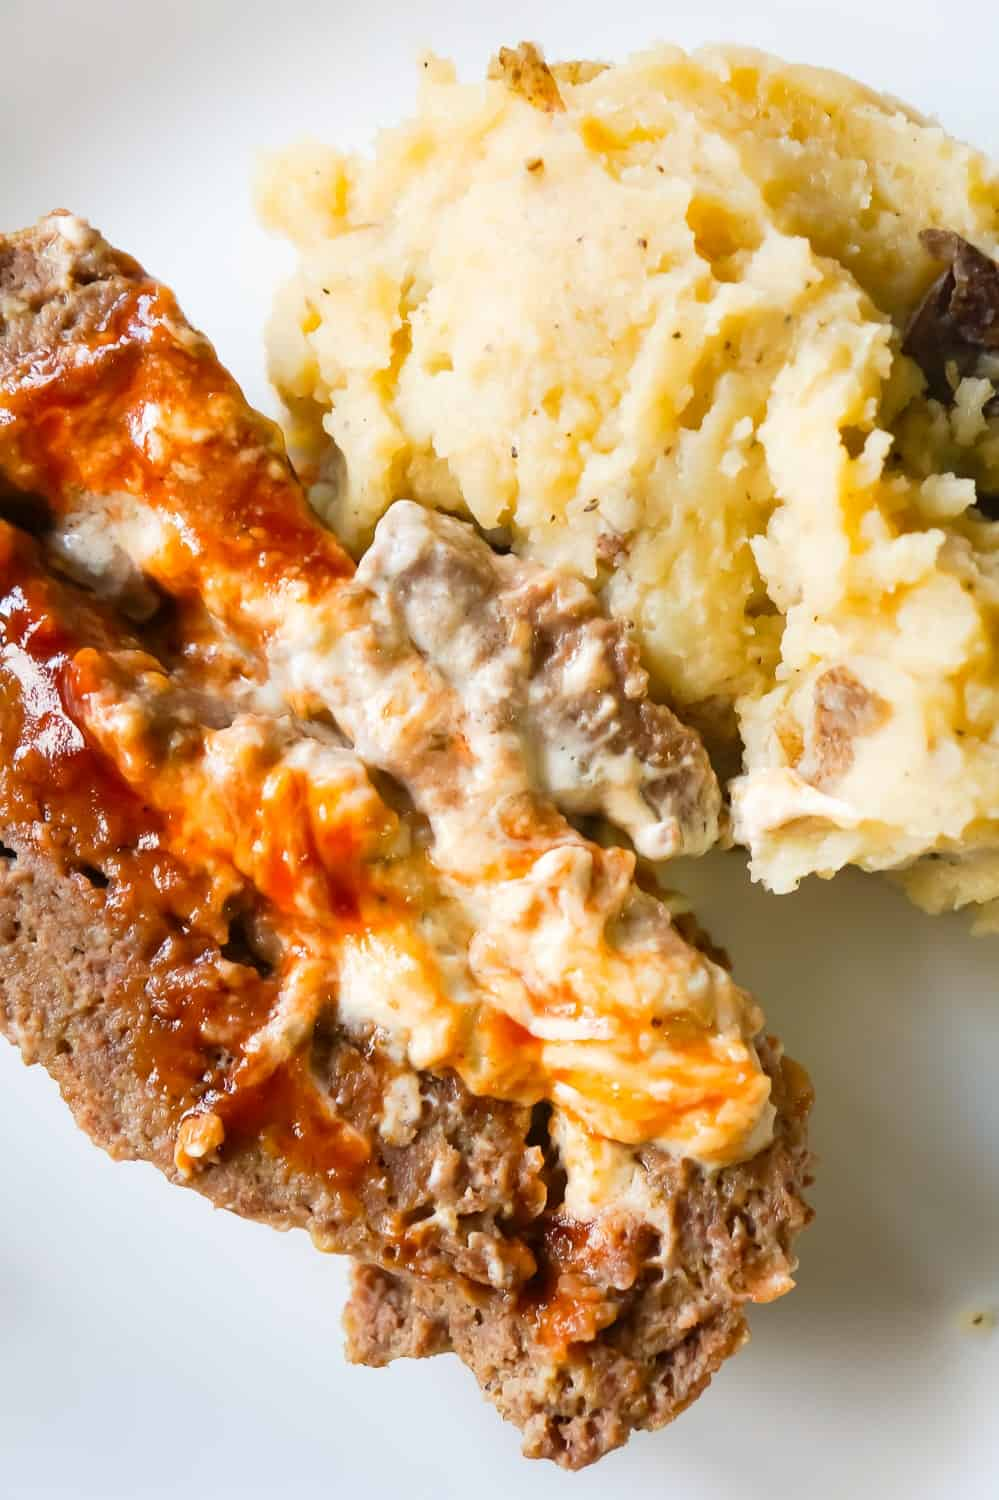 Instant Pot Cream Cheese Stuffed Meatloaf and Mashed Potatoes is an easy dinner recipe all cooked together in the Instant Pot. This delicious meatloaf is stuffed with Philadelphia Chive Whipped Cream Cheese and Sweet Baby Ray's BBQ Sauce.